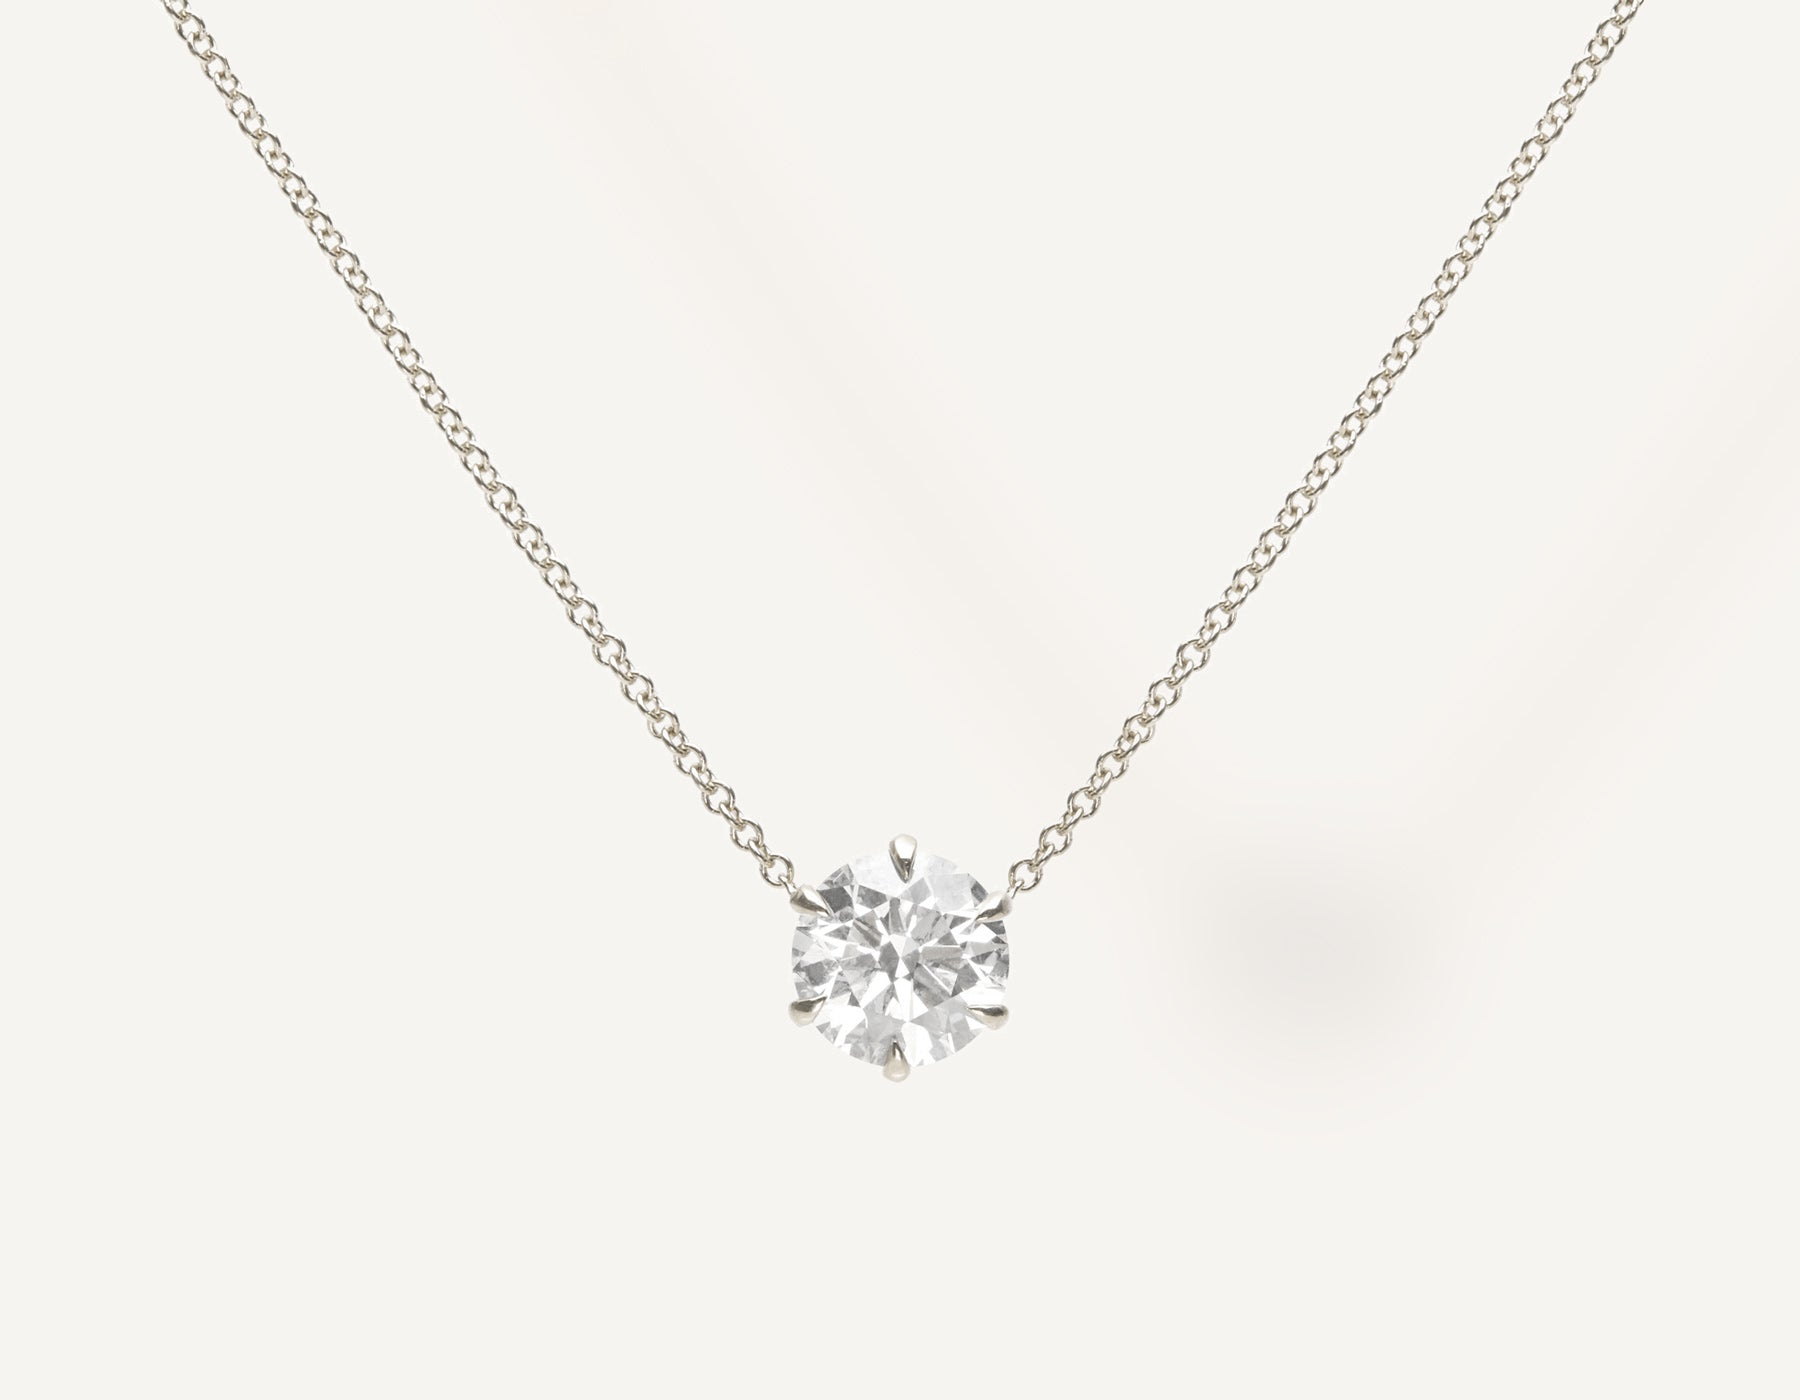 Simple Classic 1.0 ct Round Brilliant Diamond Necklace 18k solid gold oval link chain Vrai & Oro sustainable jewelry, 18K White Gold